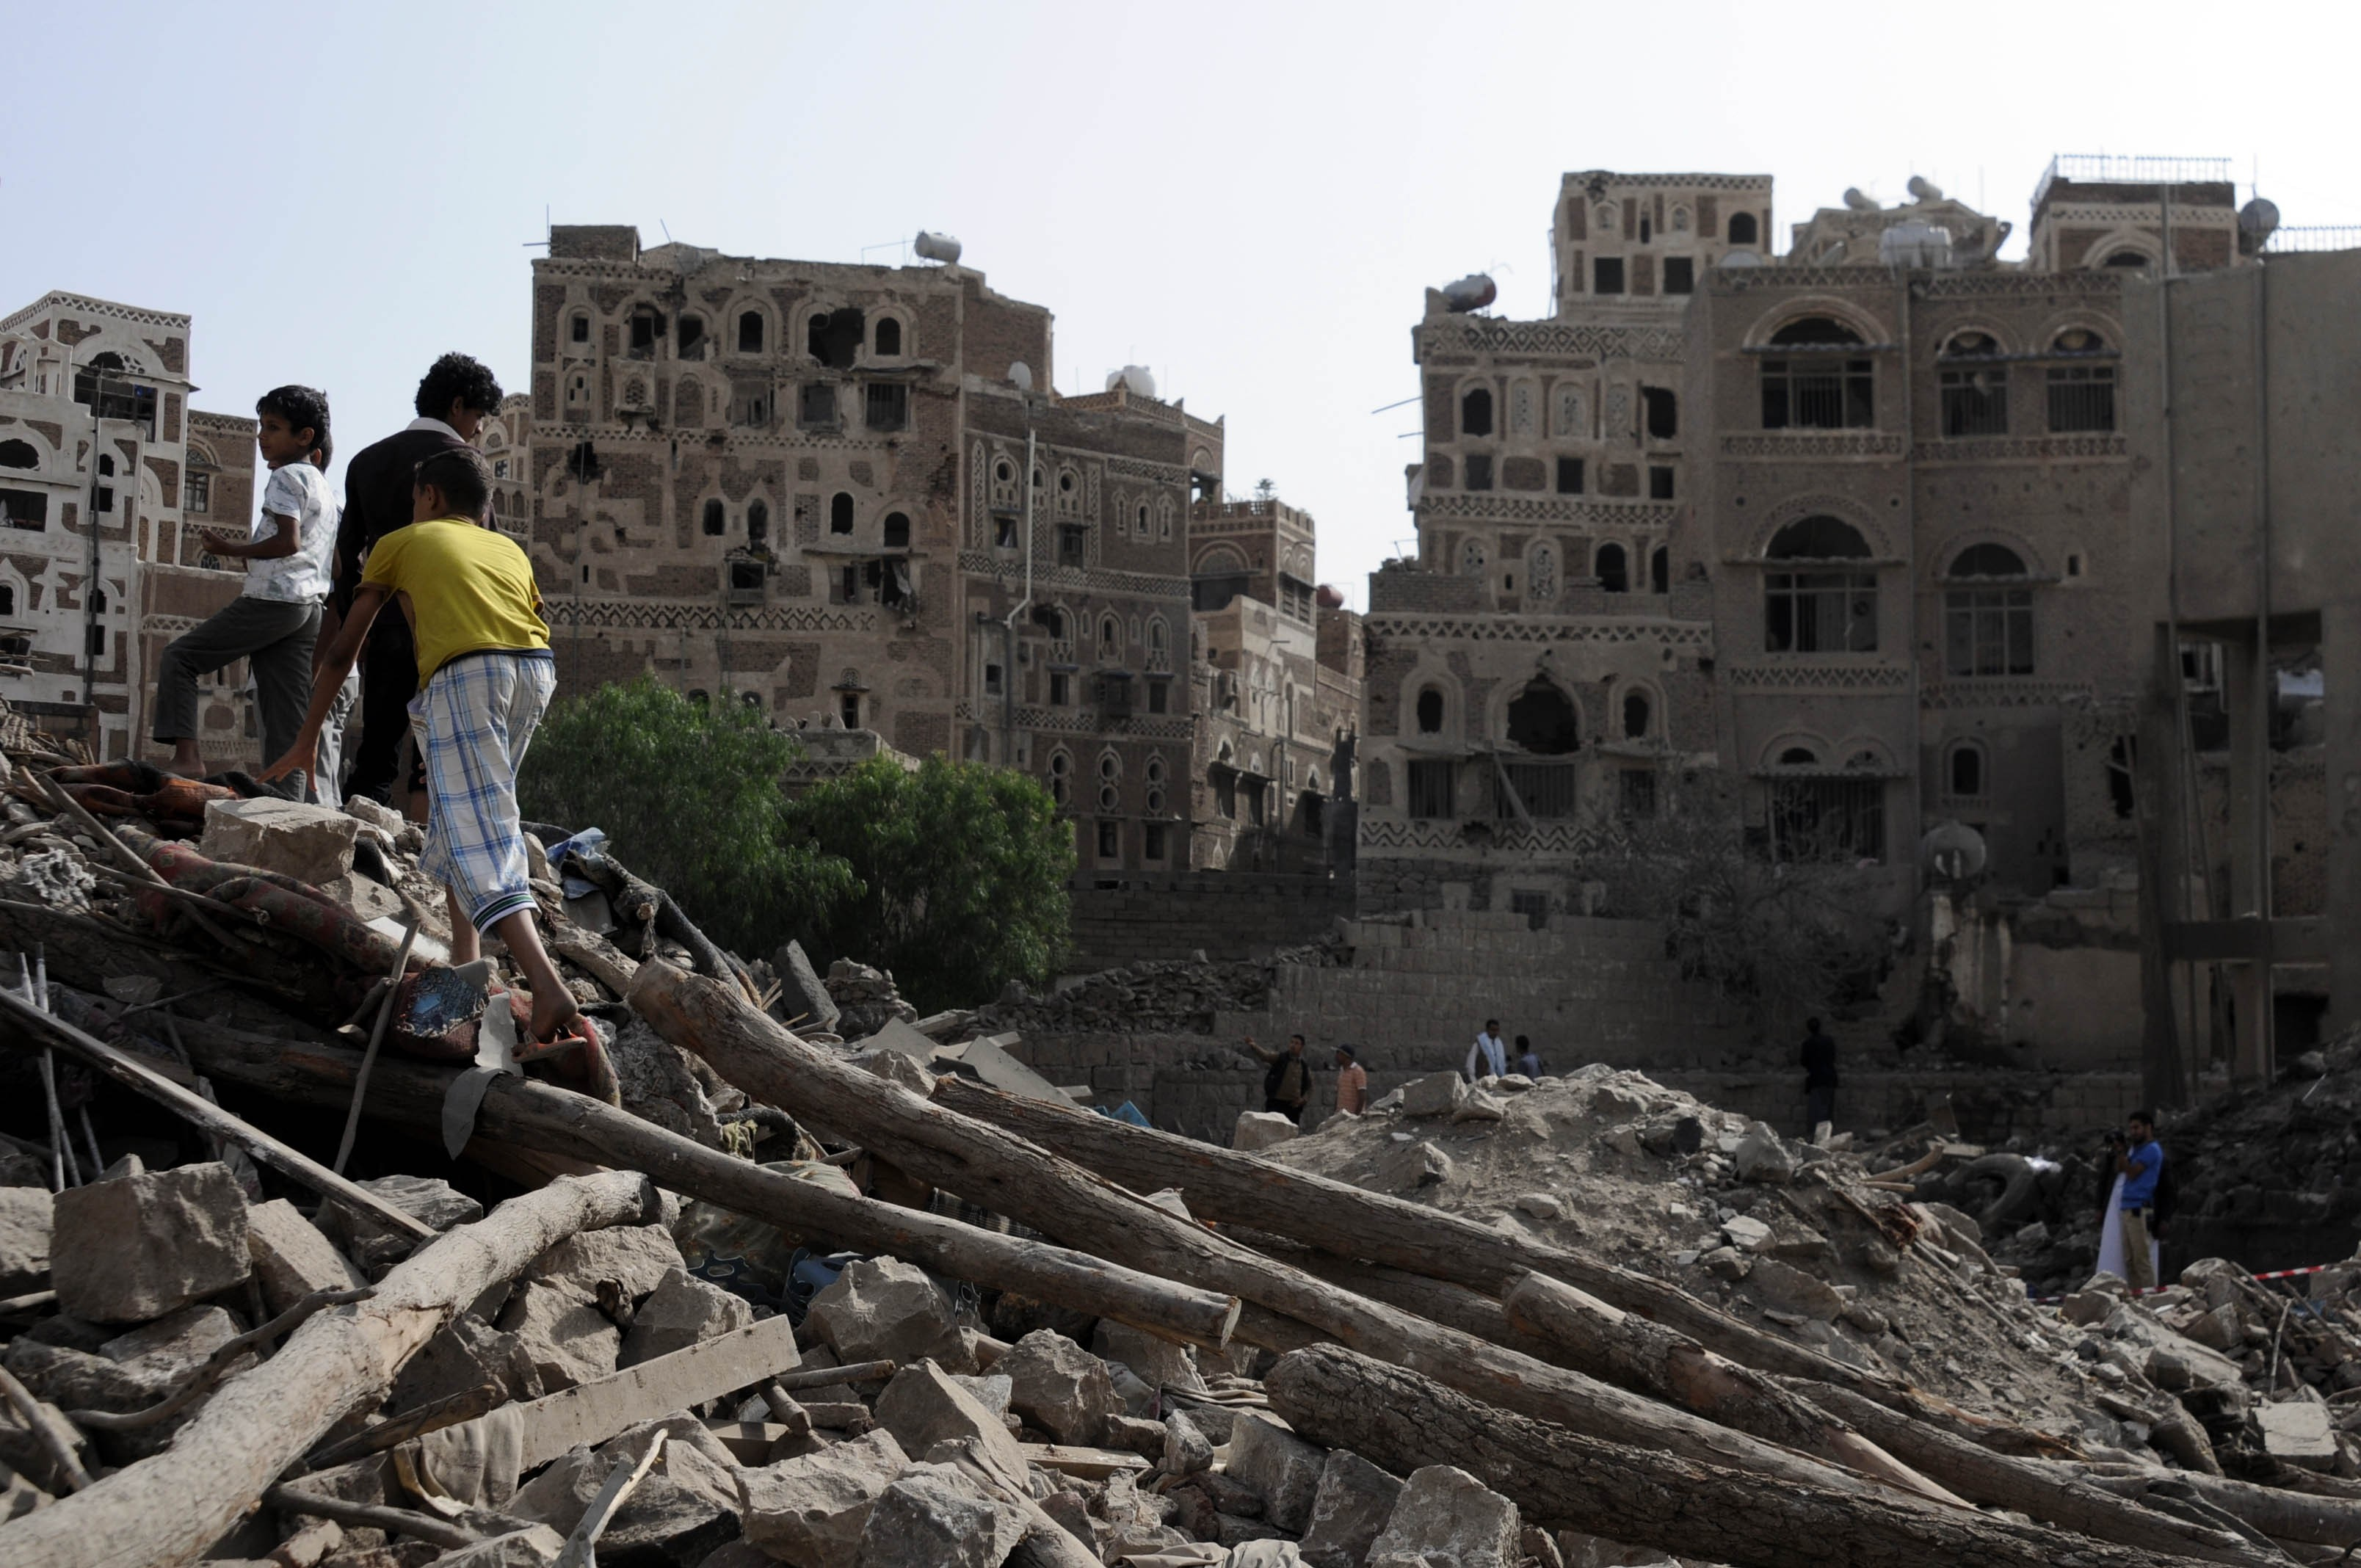 the yemen conflict As air raids continue to batter the arab world's poorest state, many yemenis fear the country's deepening divisions will inflict irreparable damage to its soul.